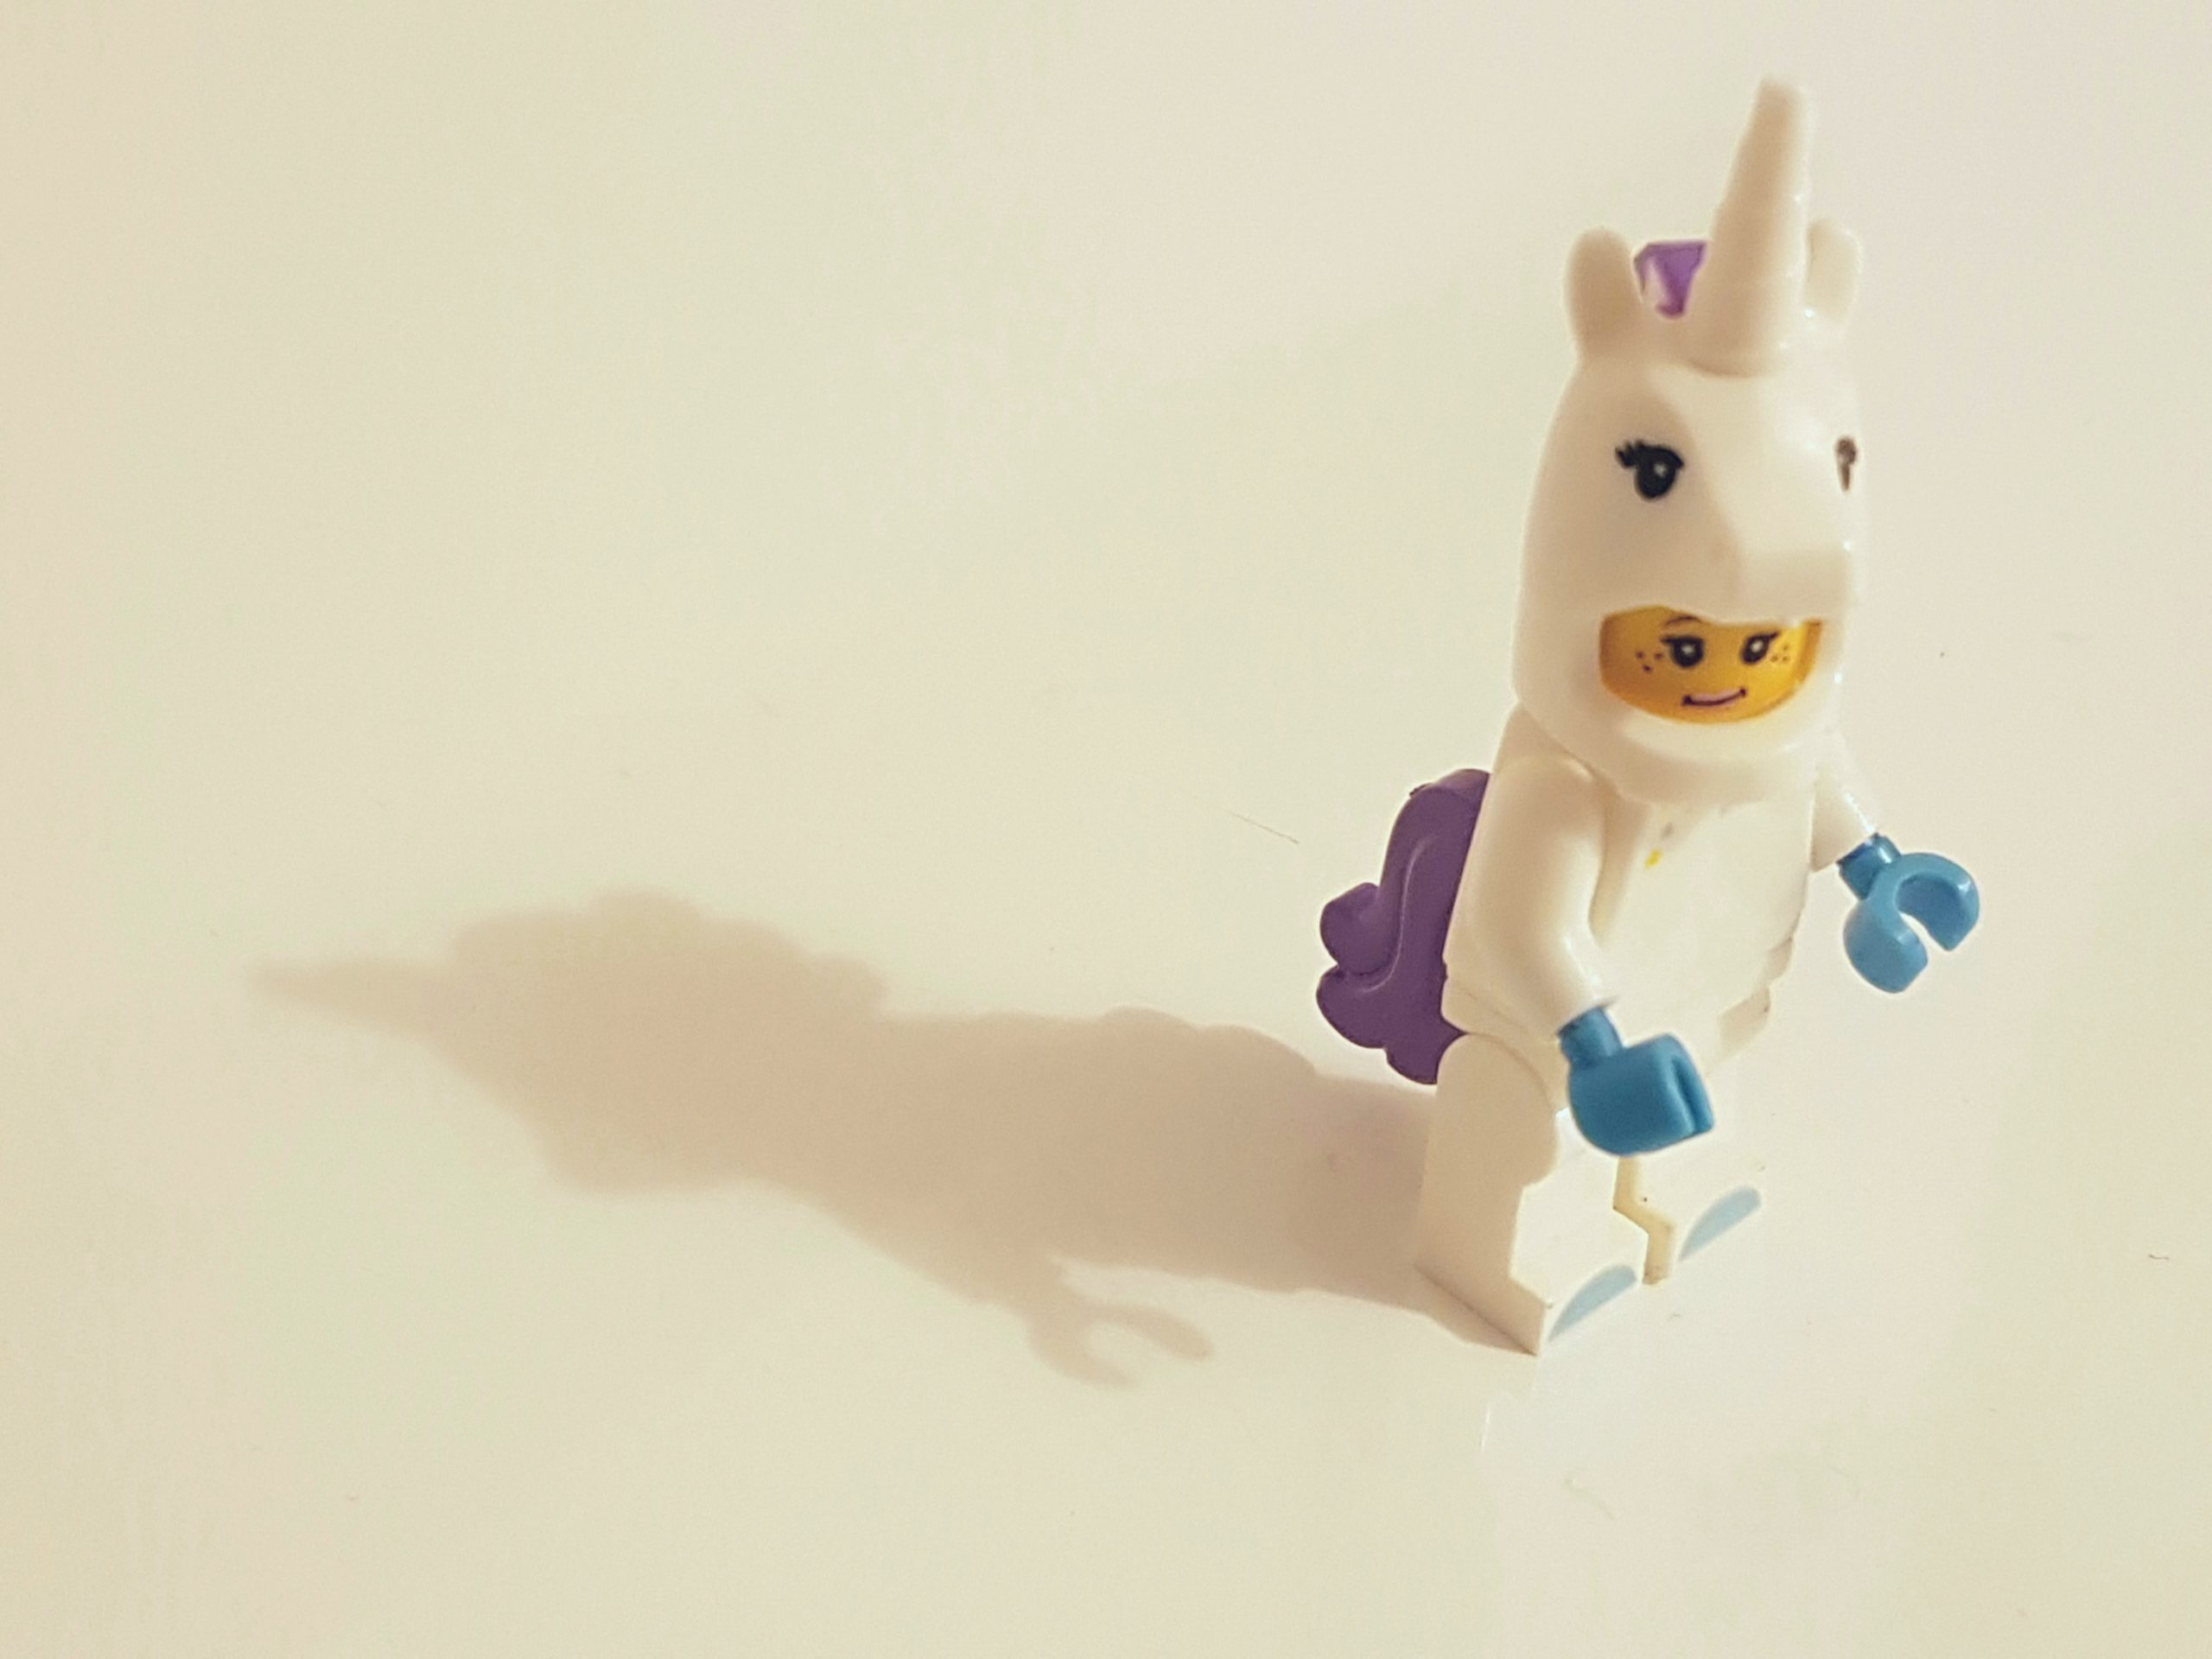 A lego in an unicorn costume